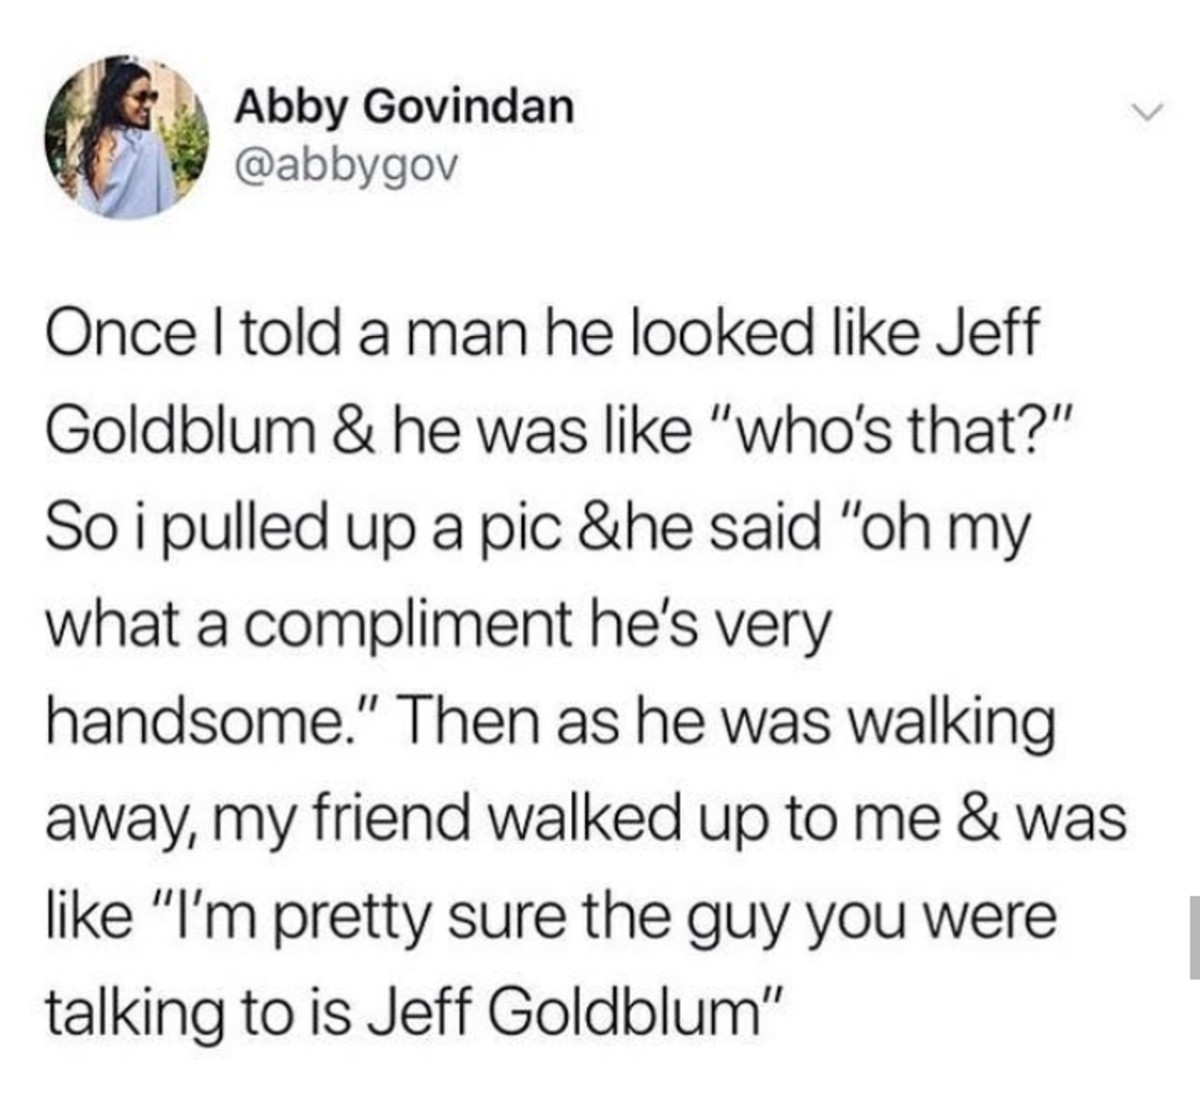 Jeff Goldblum. .. That sounds like something he'd do.